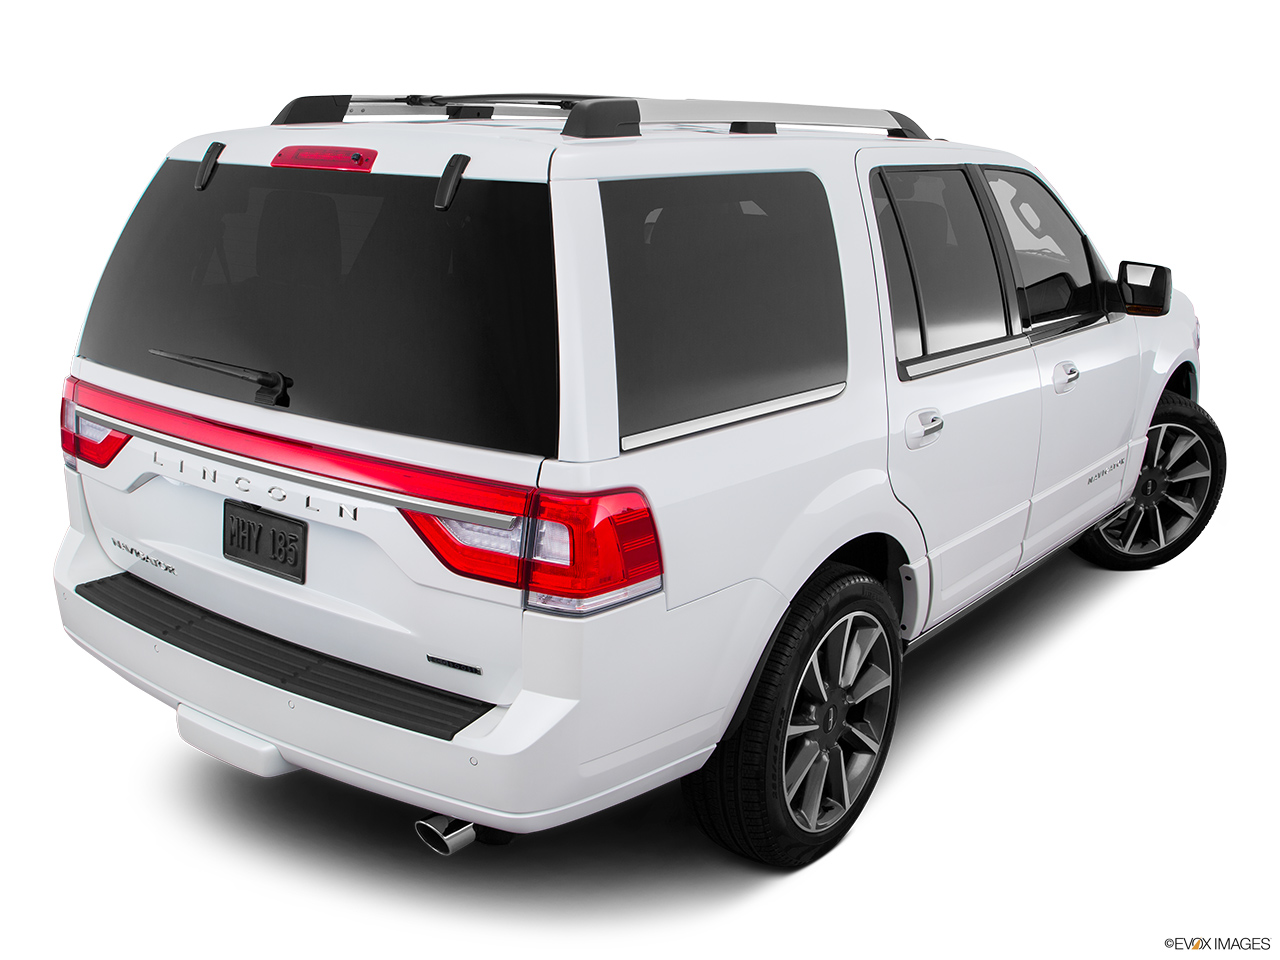 2016 Lincoln Navigator Reserve Rear 3/4 angle view.